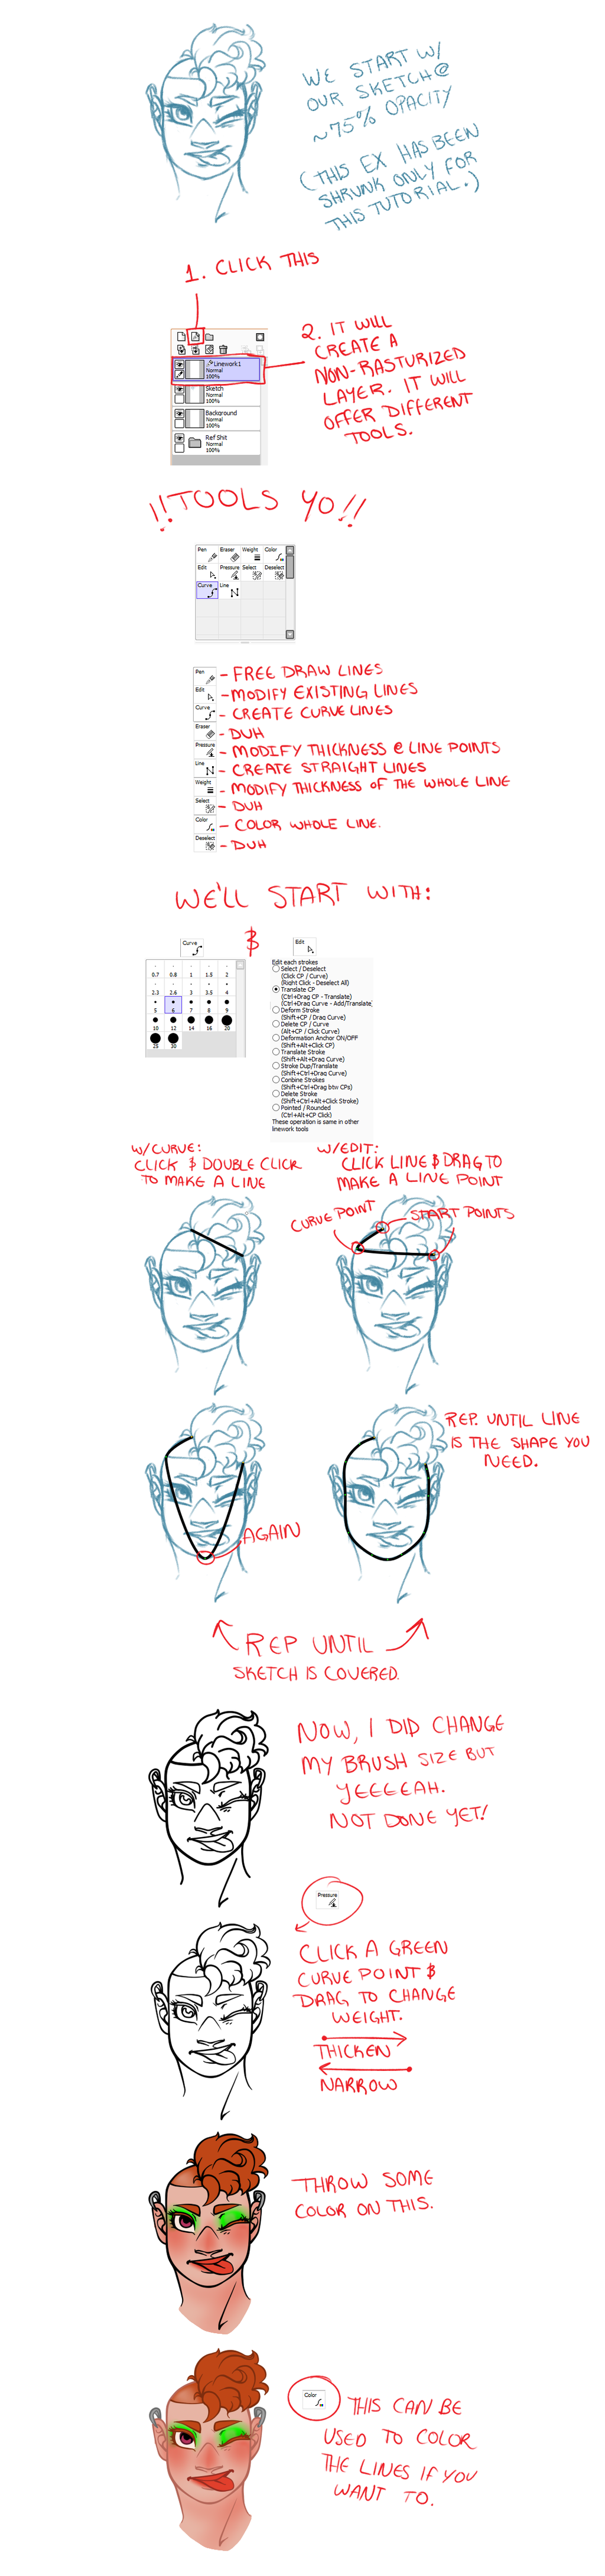 Line Art Layer : Paint tool sai lineart layer tutorial full size by lily